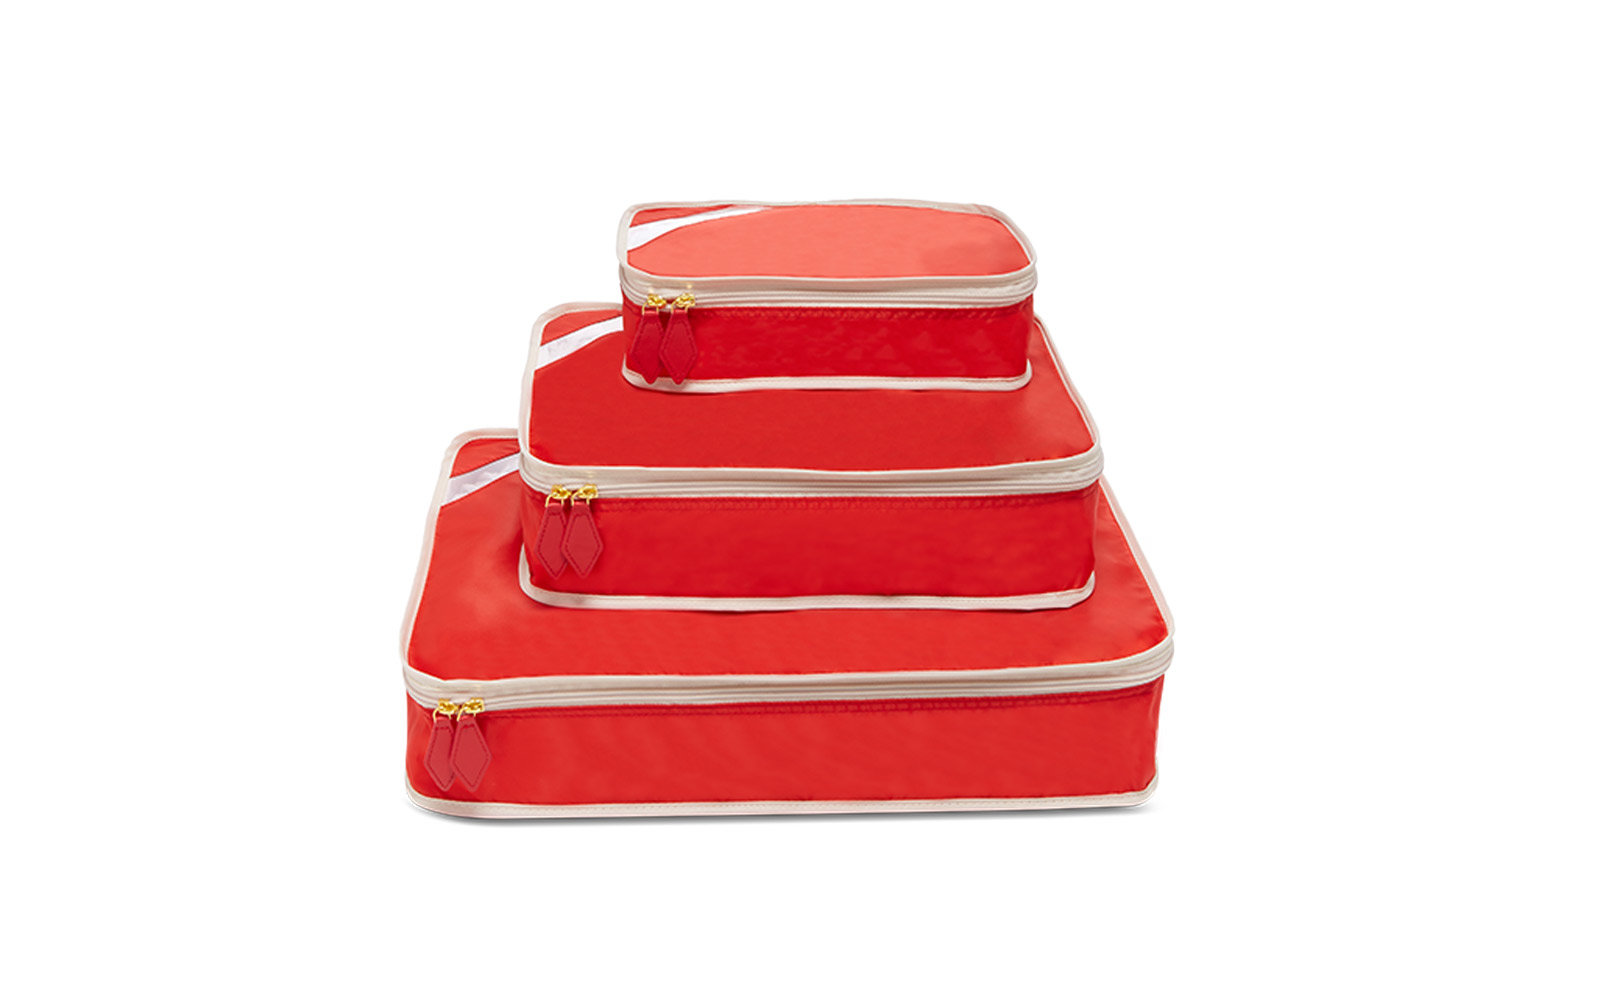 cd4e66caac05 The 8 Best Packing Cubes for Travel